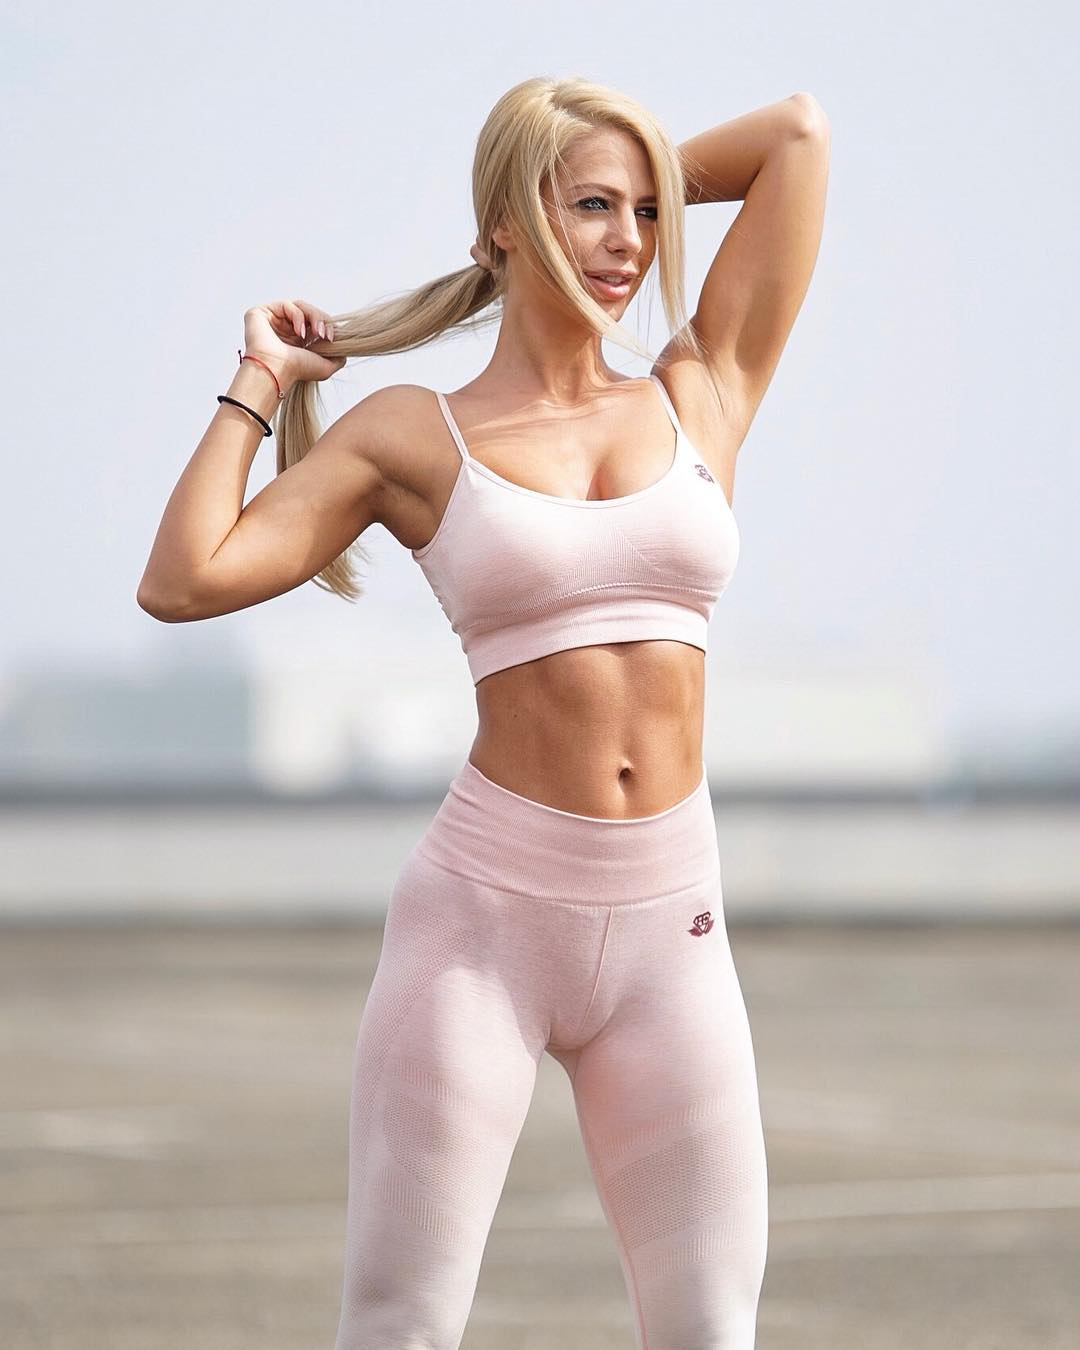 Yanita-Yancheva-Wallpapers-Insta-Fit-Bio-9